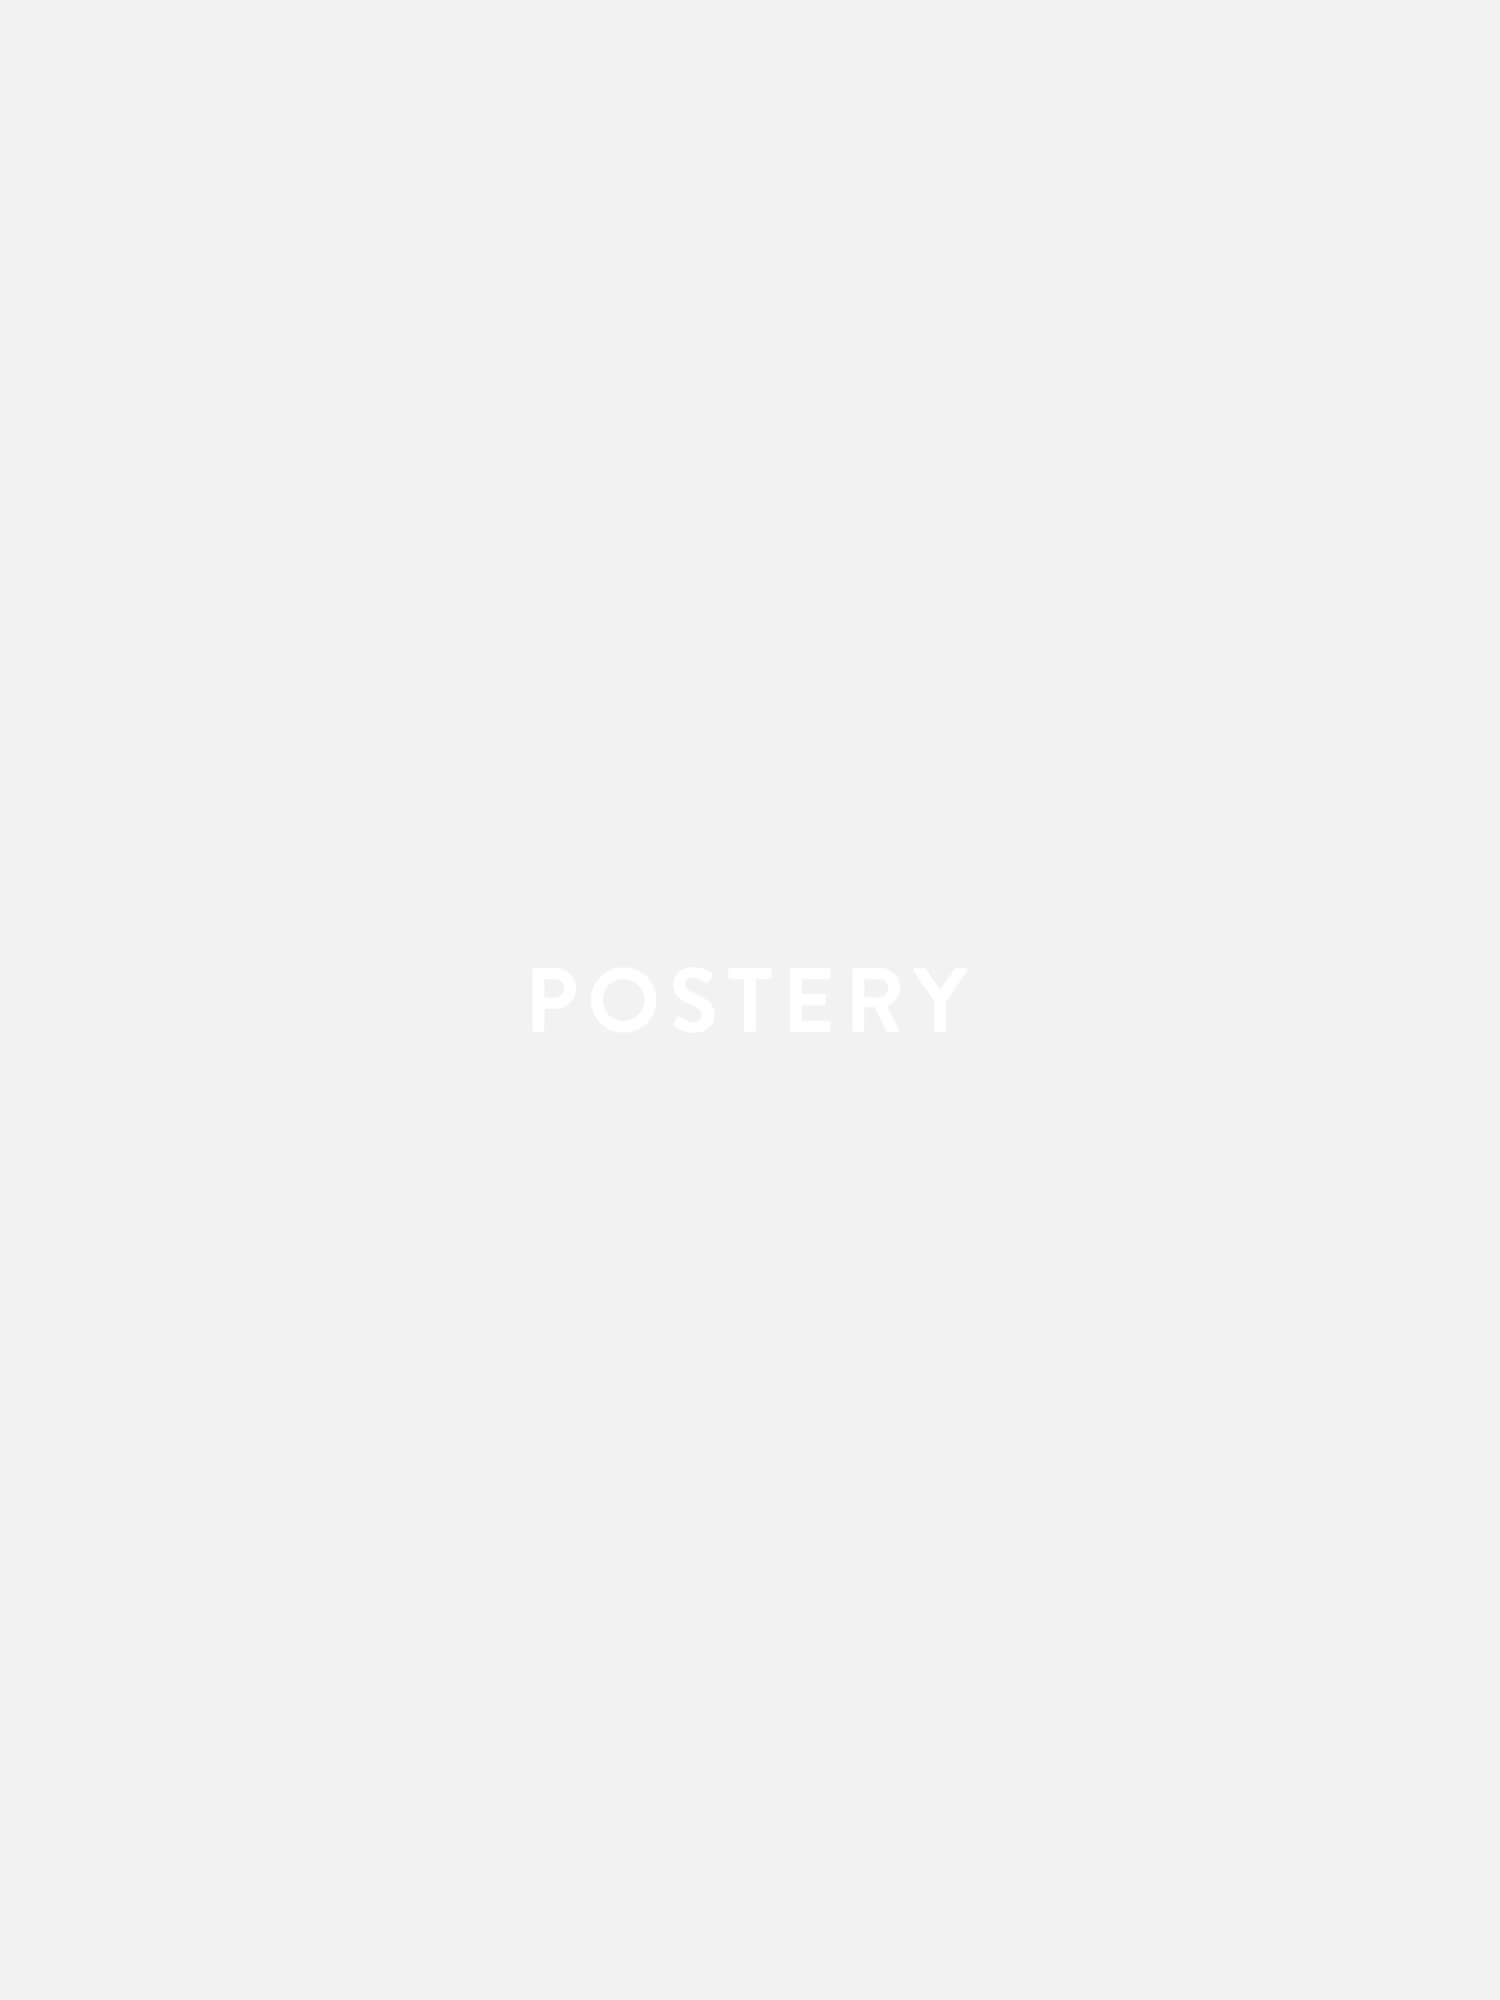 Oh no, the Police Poster